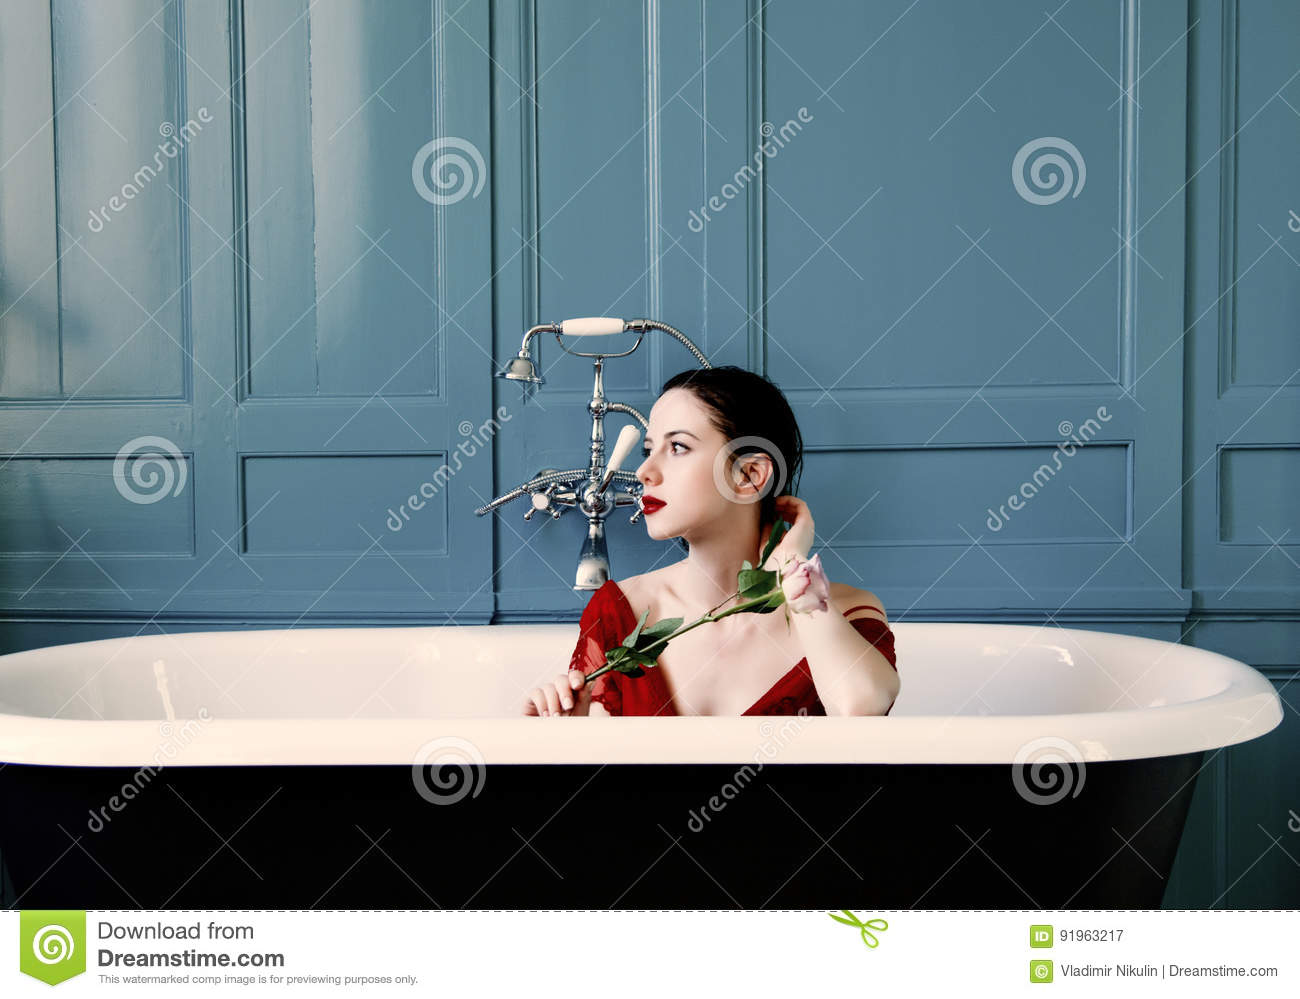 Young Woman In Bath With Flower Stock Image - Image of filter ...